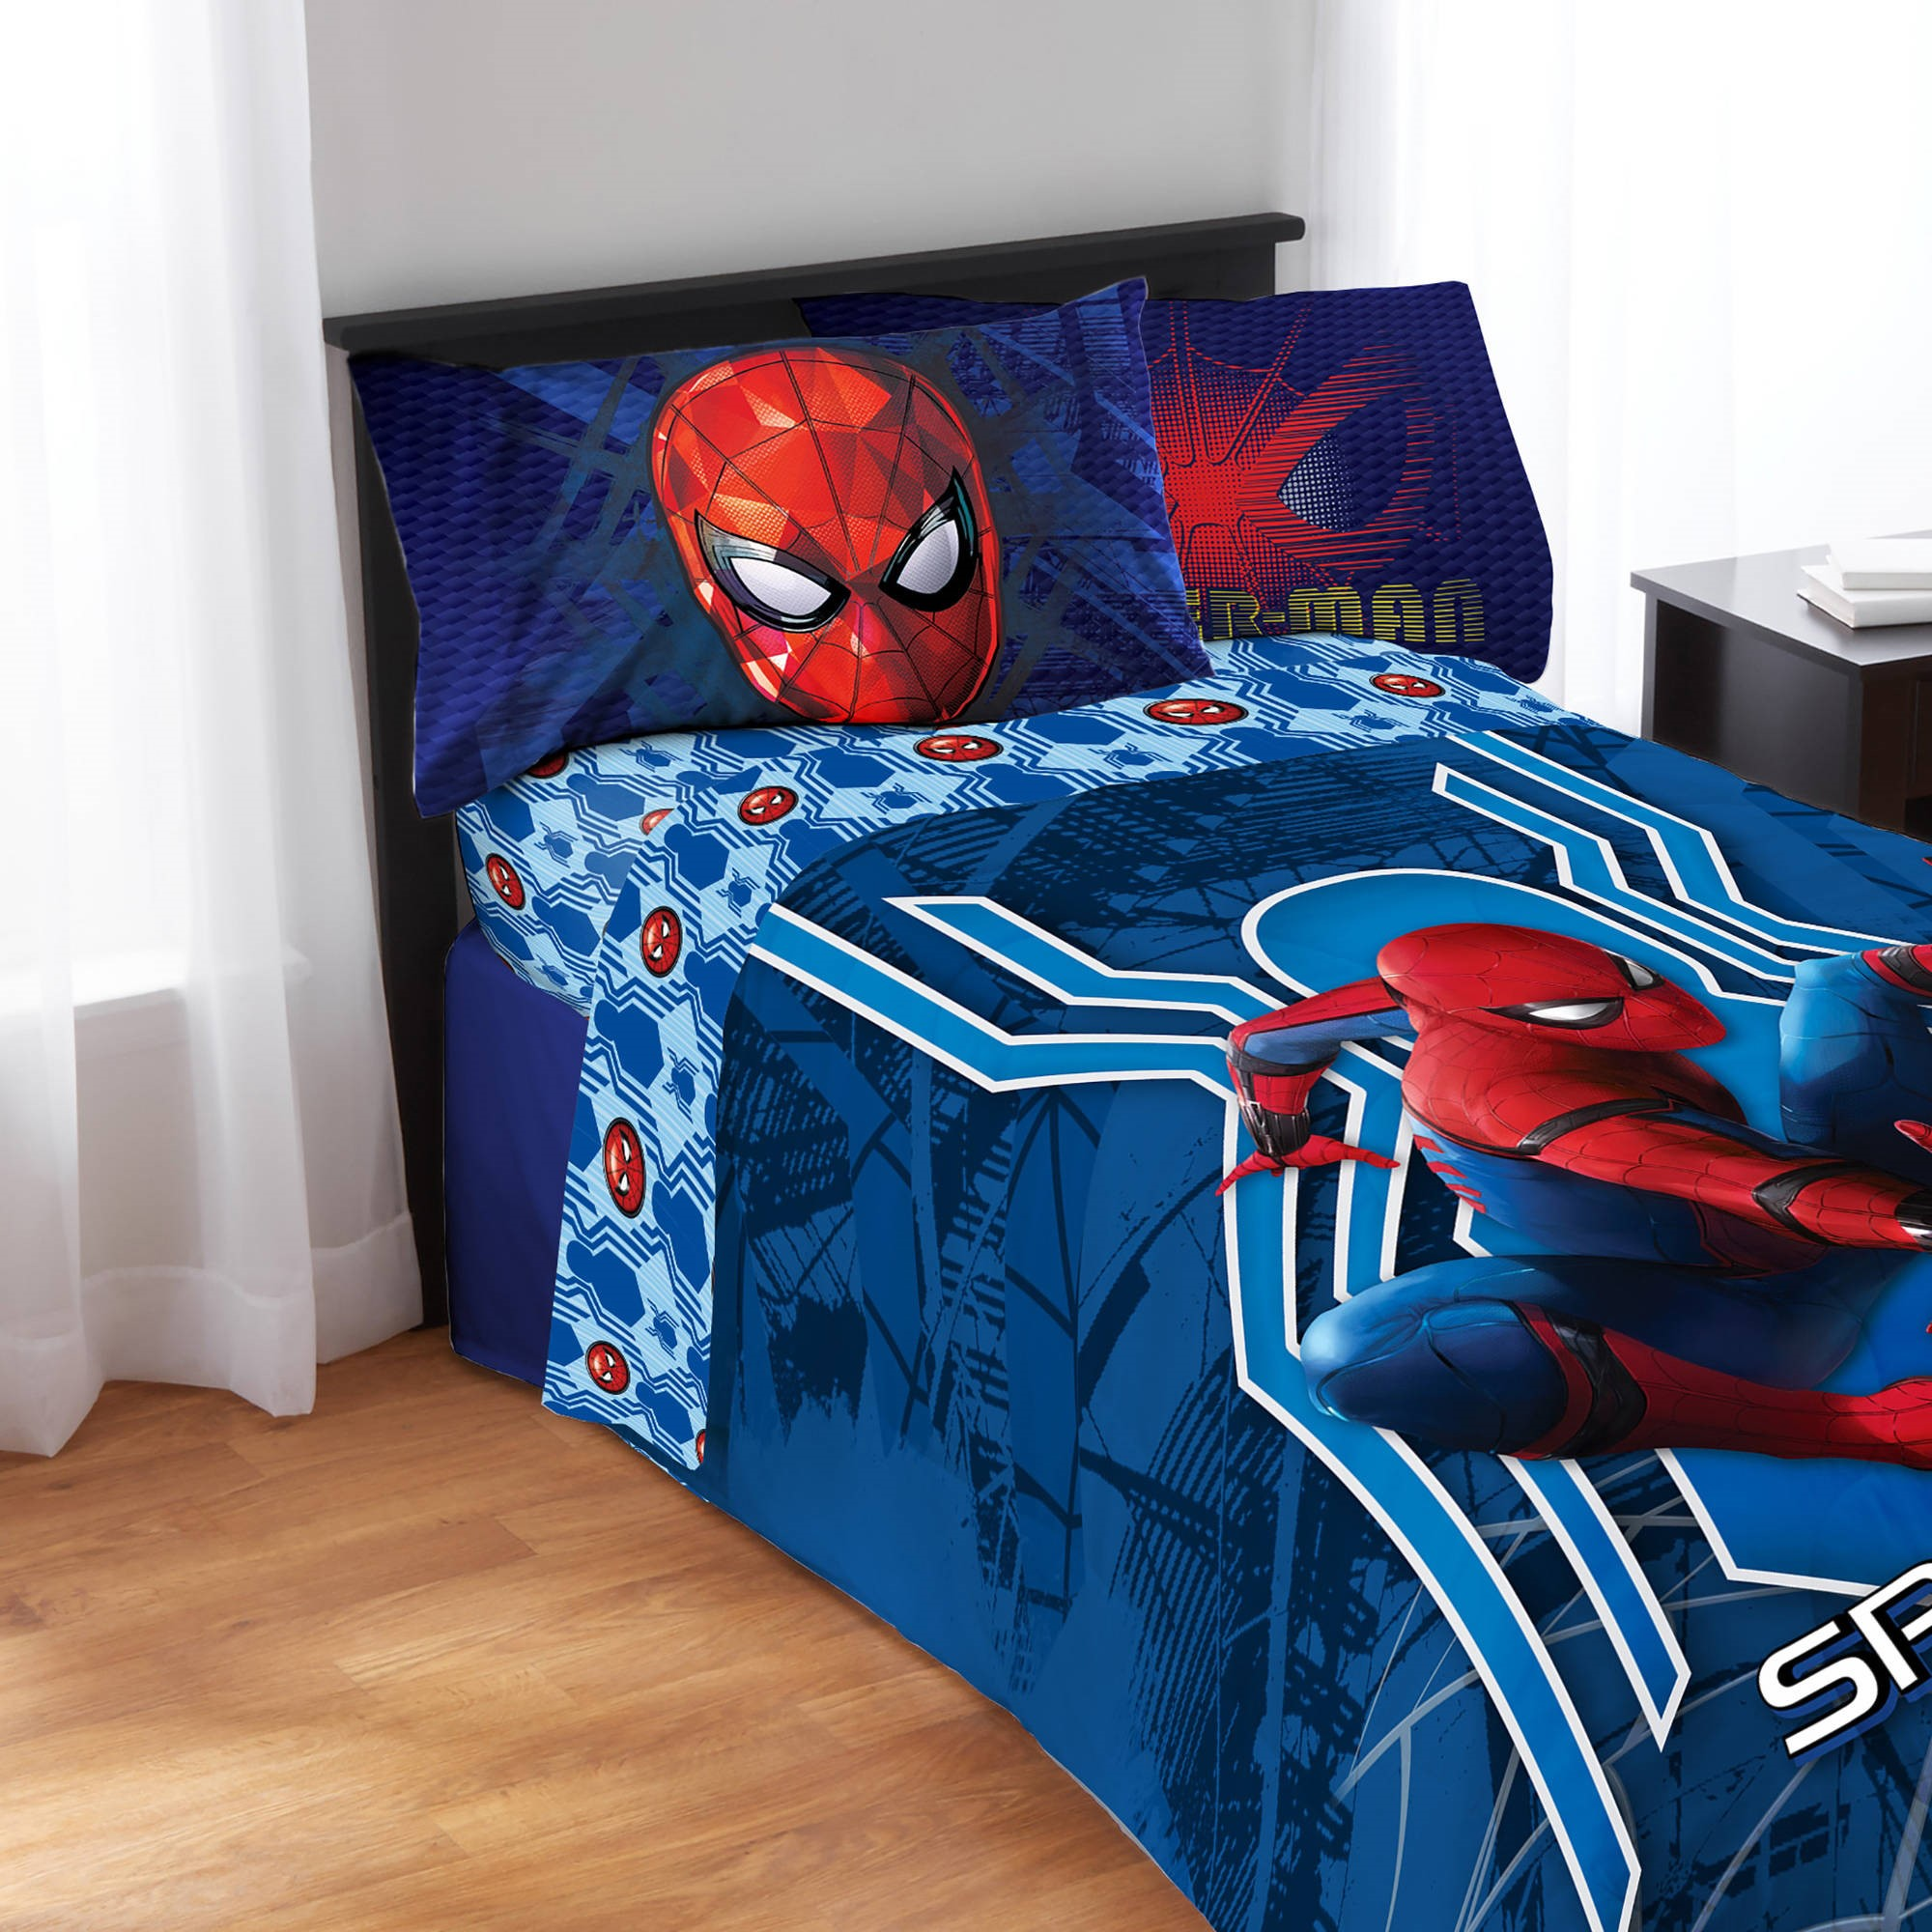 Marvel Spider-Man Full Sheet Set, 1 Each